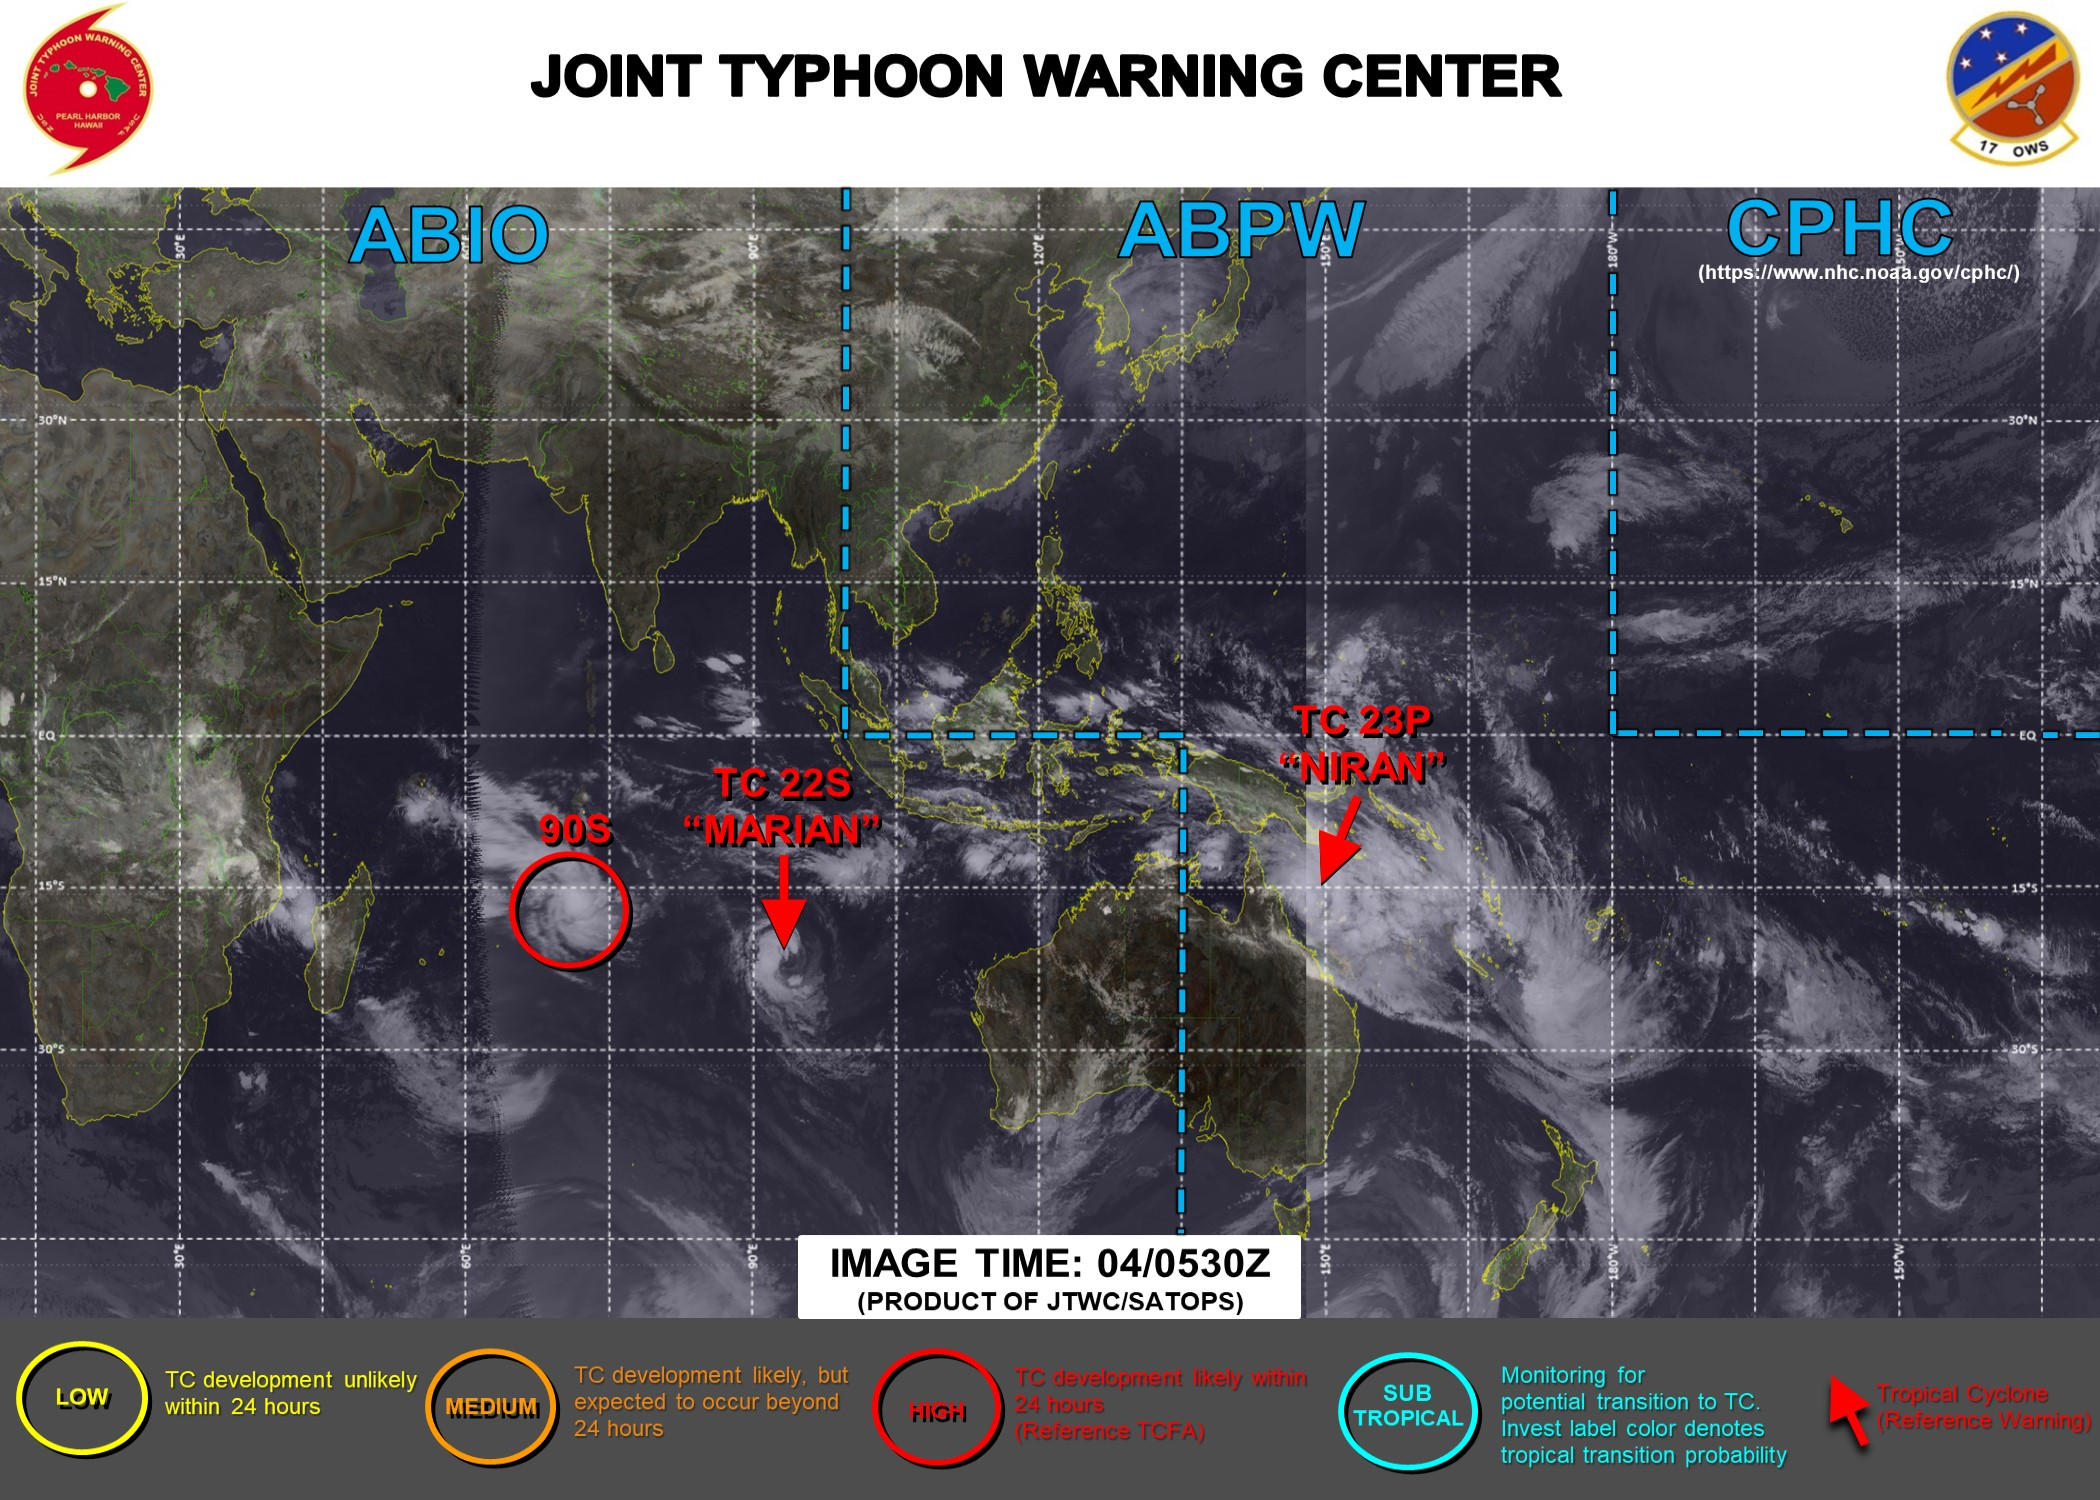 04/06UTC. JTWC HAS BEEN ISSUING 6HOURLY WARNINGS ON 23P(NIRAN) AND 12HOURLY WARNINGS ON 22S(MARIAN). 3 HOURLY SATELLITE BULLETINS ARE ISSUED FOR BOTH SYSTEMS. INVEST 90S IS NOW LIKELY TO  REACH35KNOTS WITHIN 24HOURS. JTWC HAS BEGUN ISSUING 3 HOURLY SATELLITE BULLETINS FOR 90S AT 04/06UTC.